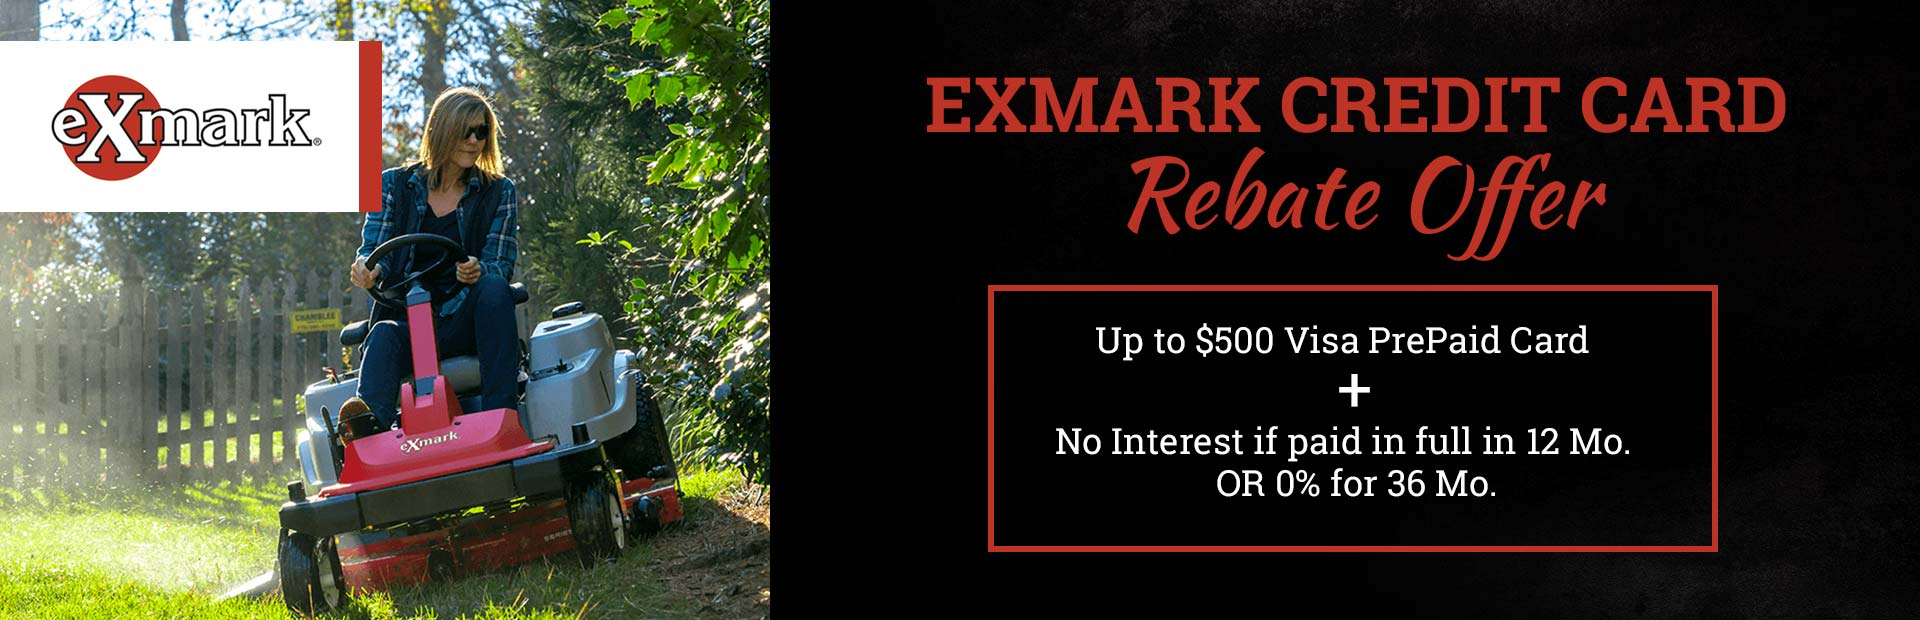 ExMark Credit Card Rebate Offer: Click here for details!